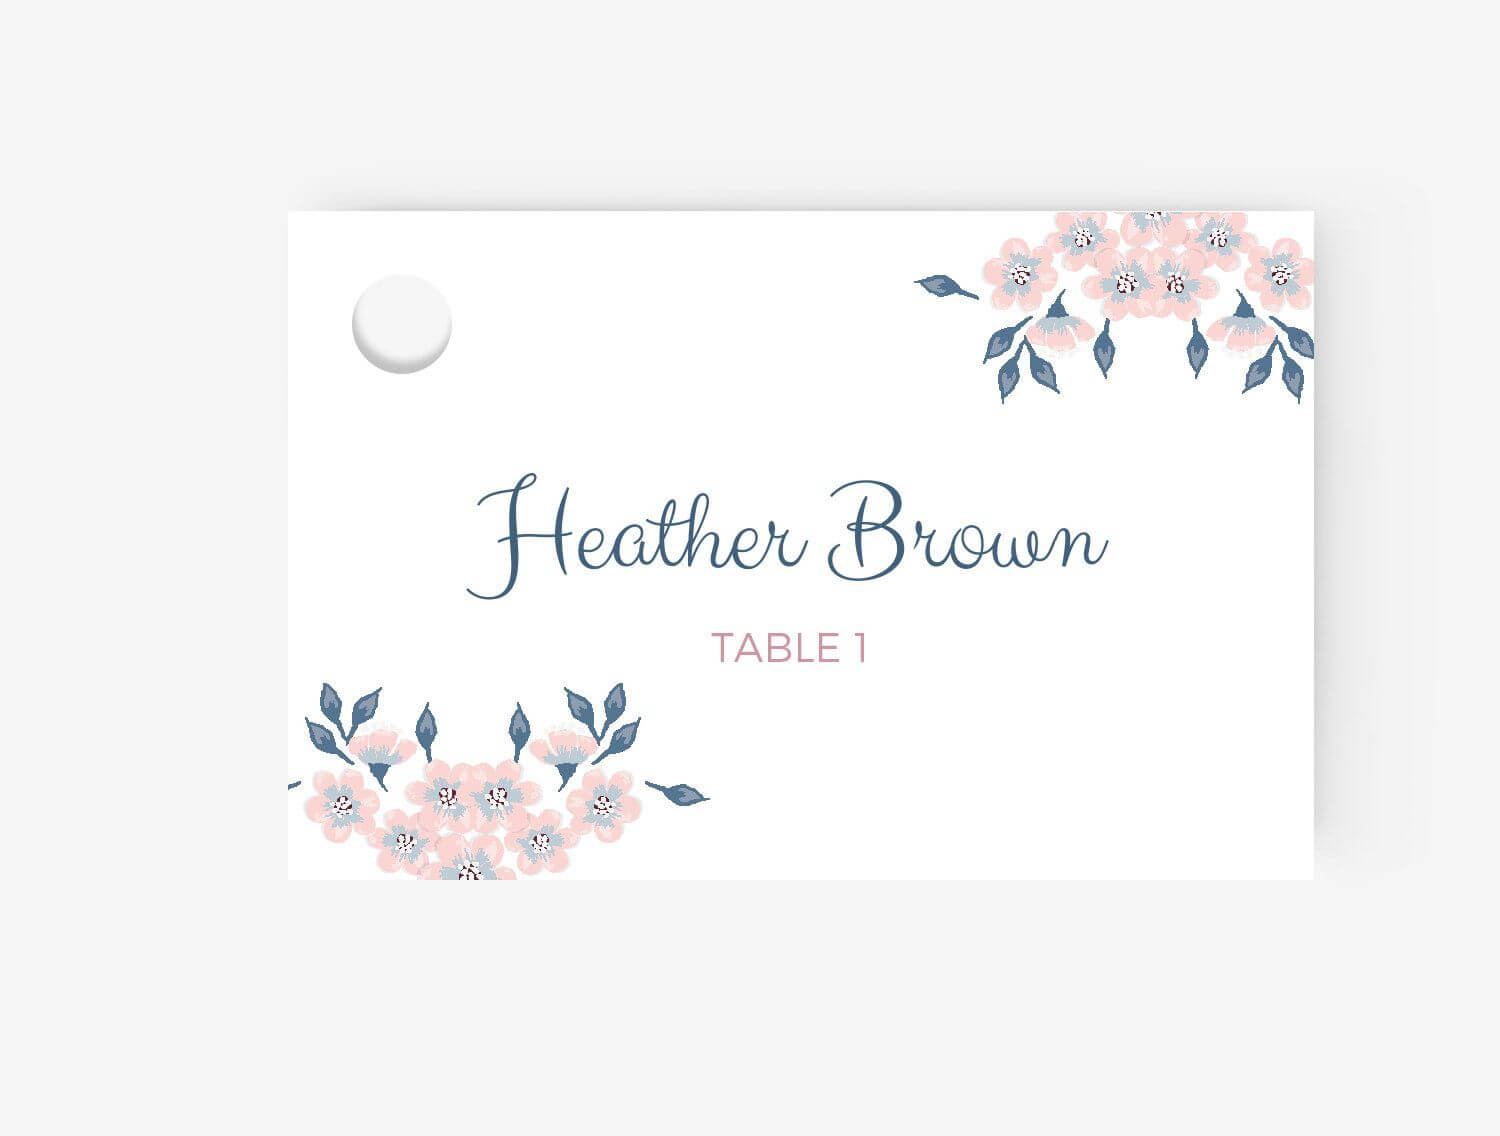 011 Place Cards Template Word Ideas Marvelous Name Table Throughout Table Place Card Template Free Download